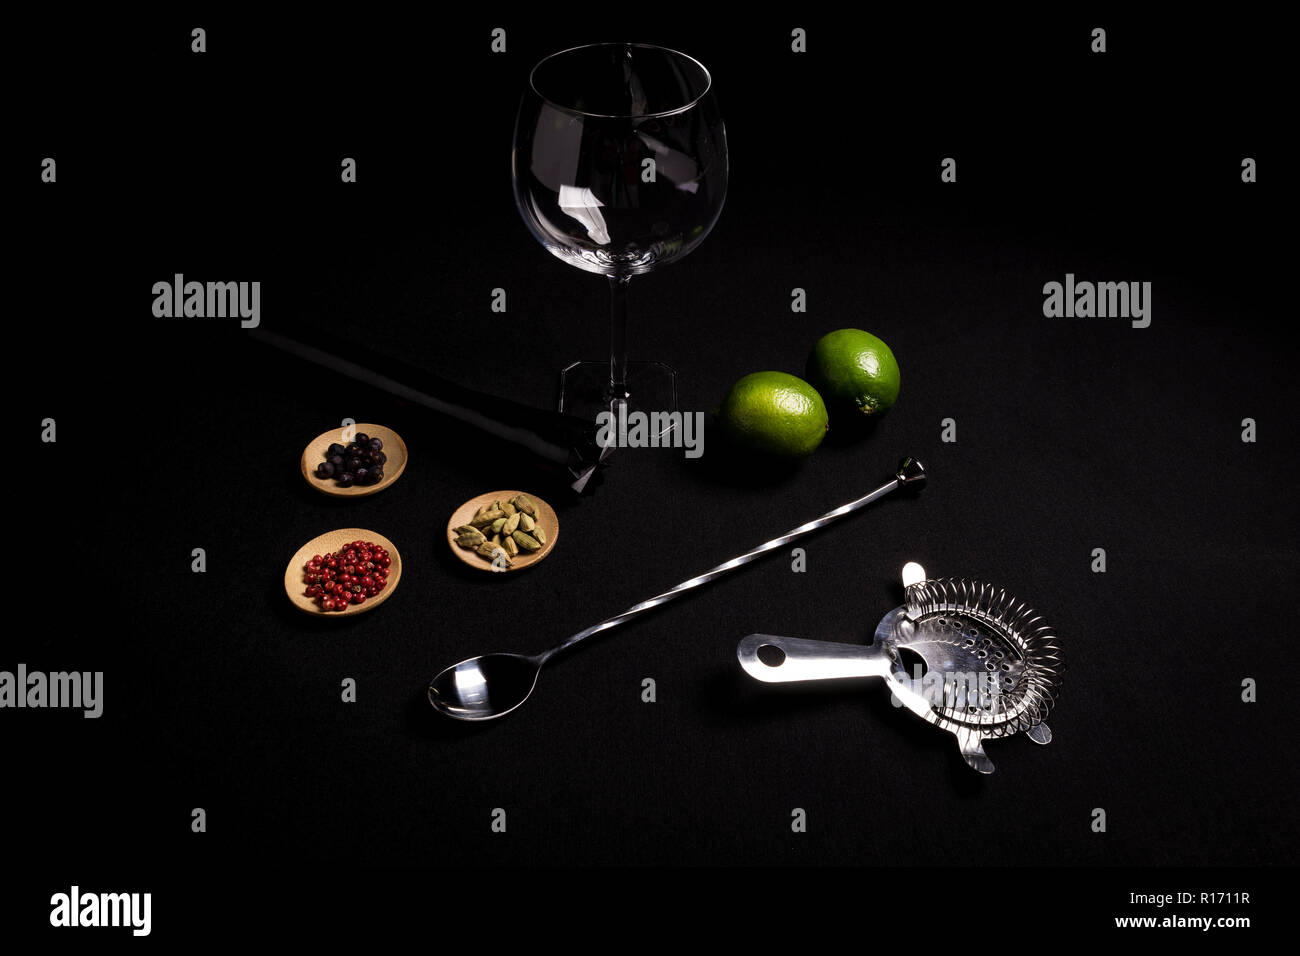 tasty and fresh gin and tonic cocktail on a black background next to your ingredients Stock Photo